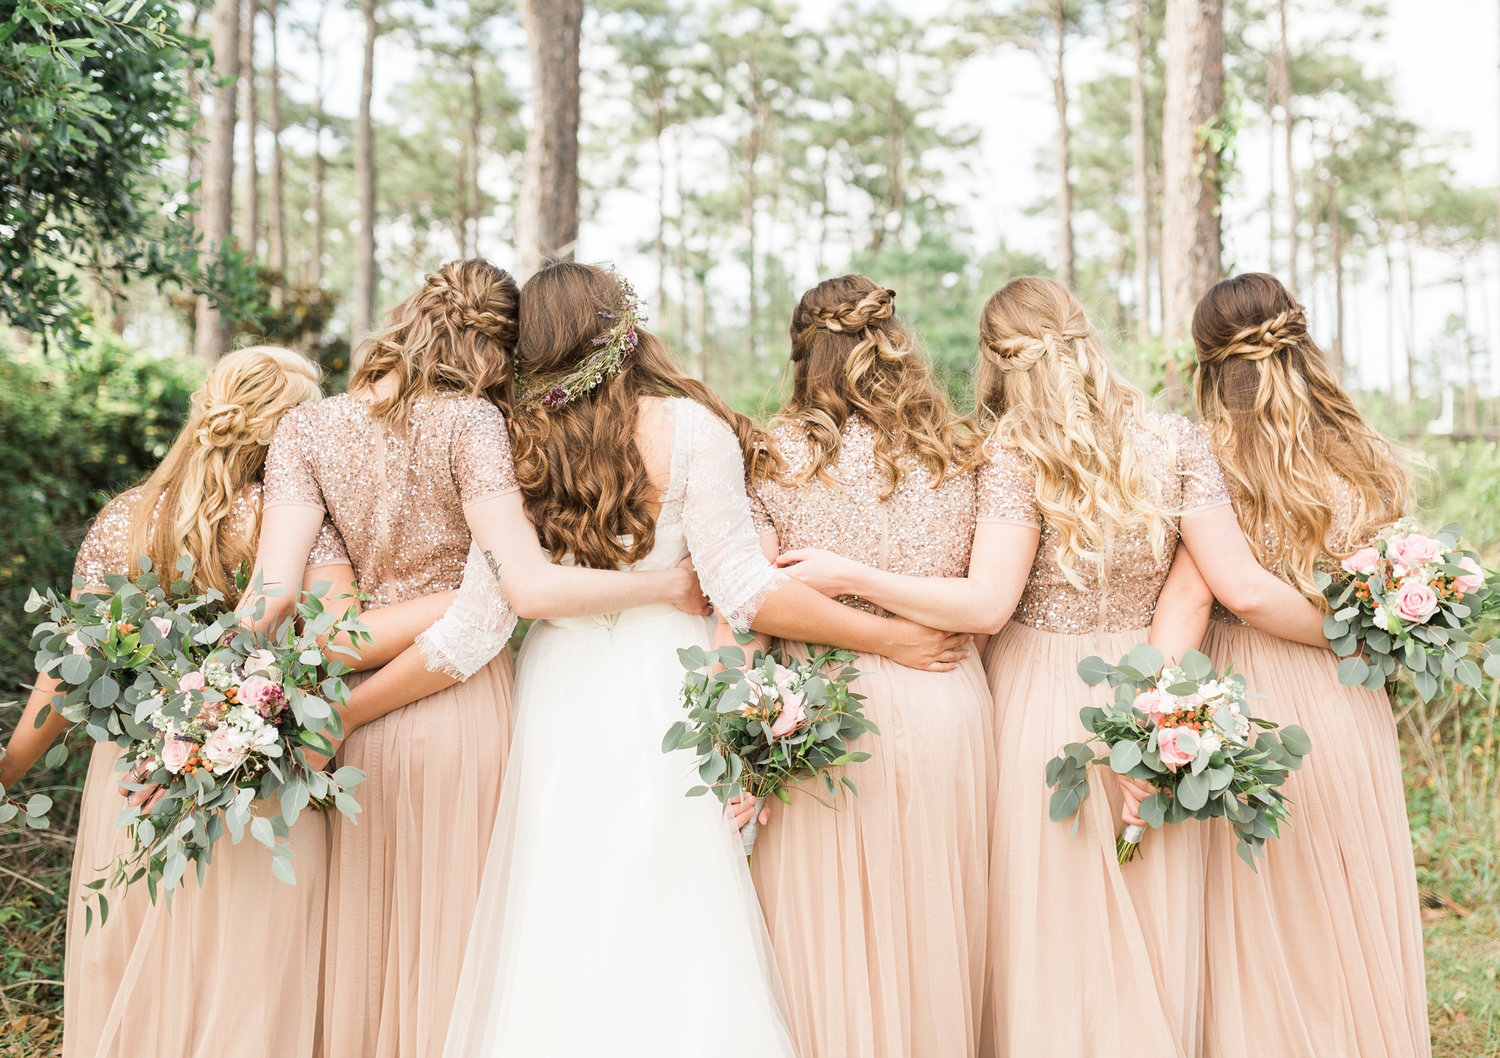 And destin wedding venues for the free spirited bride pensacola and destin wedding venues for the free spirited bride junglespirit Images